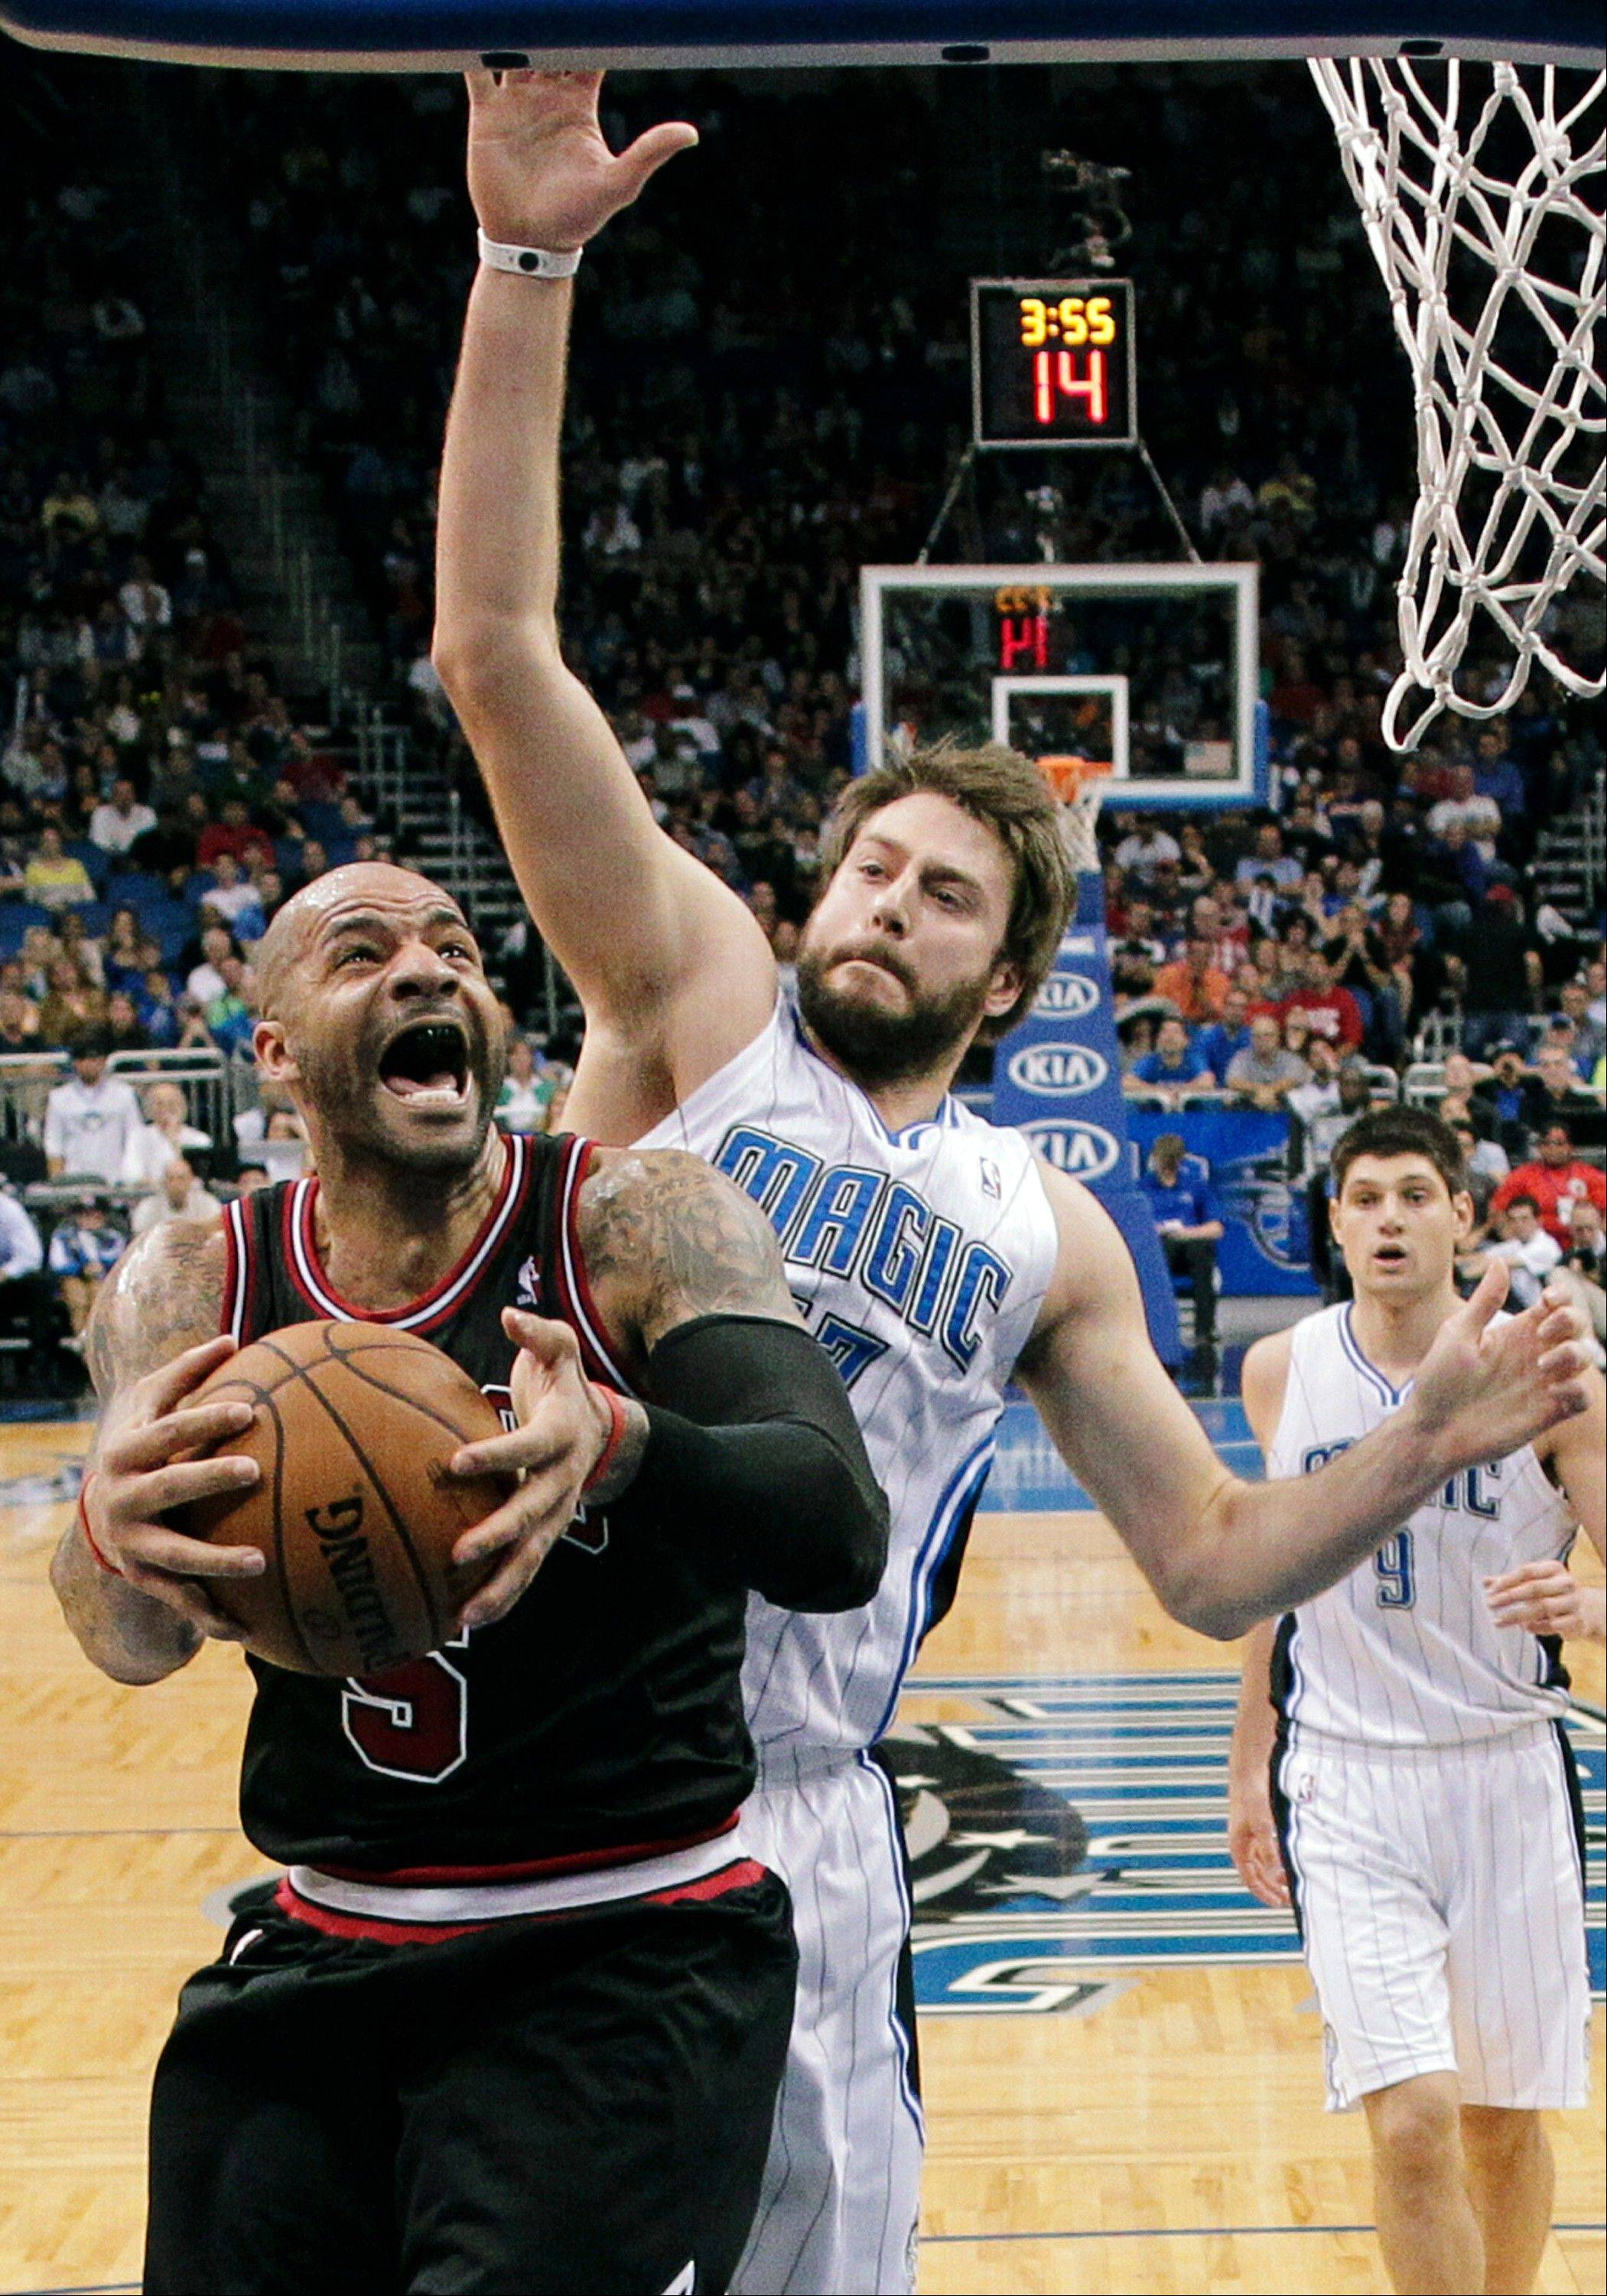 The Bulls' Carlos Boozer, who finished with a season-high 31 points, goes to the basket in front of Orlando's Josh McRoberts.